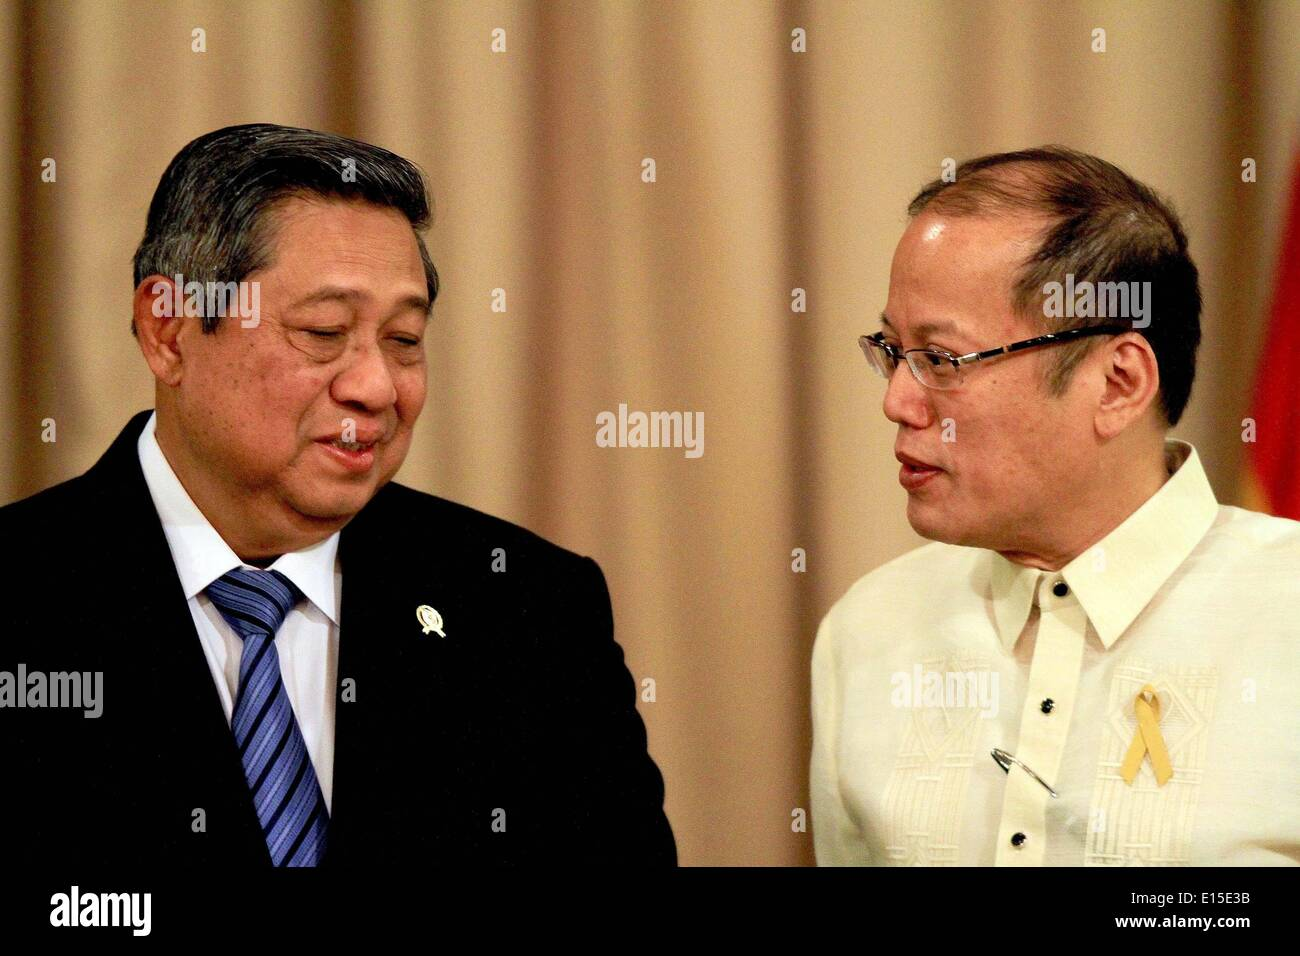 Manila, Philippines. 23rd May, 2014. Philippine President Benigno Aquino III (R) and visiting Indonesian President Susilo Bambang Yudhoyono attend the joint press conference at the presidential palace in Manila, the Philippines, May 23, 2014. The Philippines and Indonesia signed on Friday an agreement on the delimitation of their overlapping exclusive economic zones (EEZ) in the Mindanao Sea and Celebes Sea. © Rouelle Umali/Xinhua/Alamy Live News - Stock Image